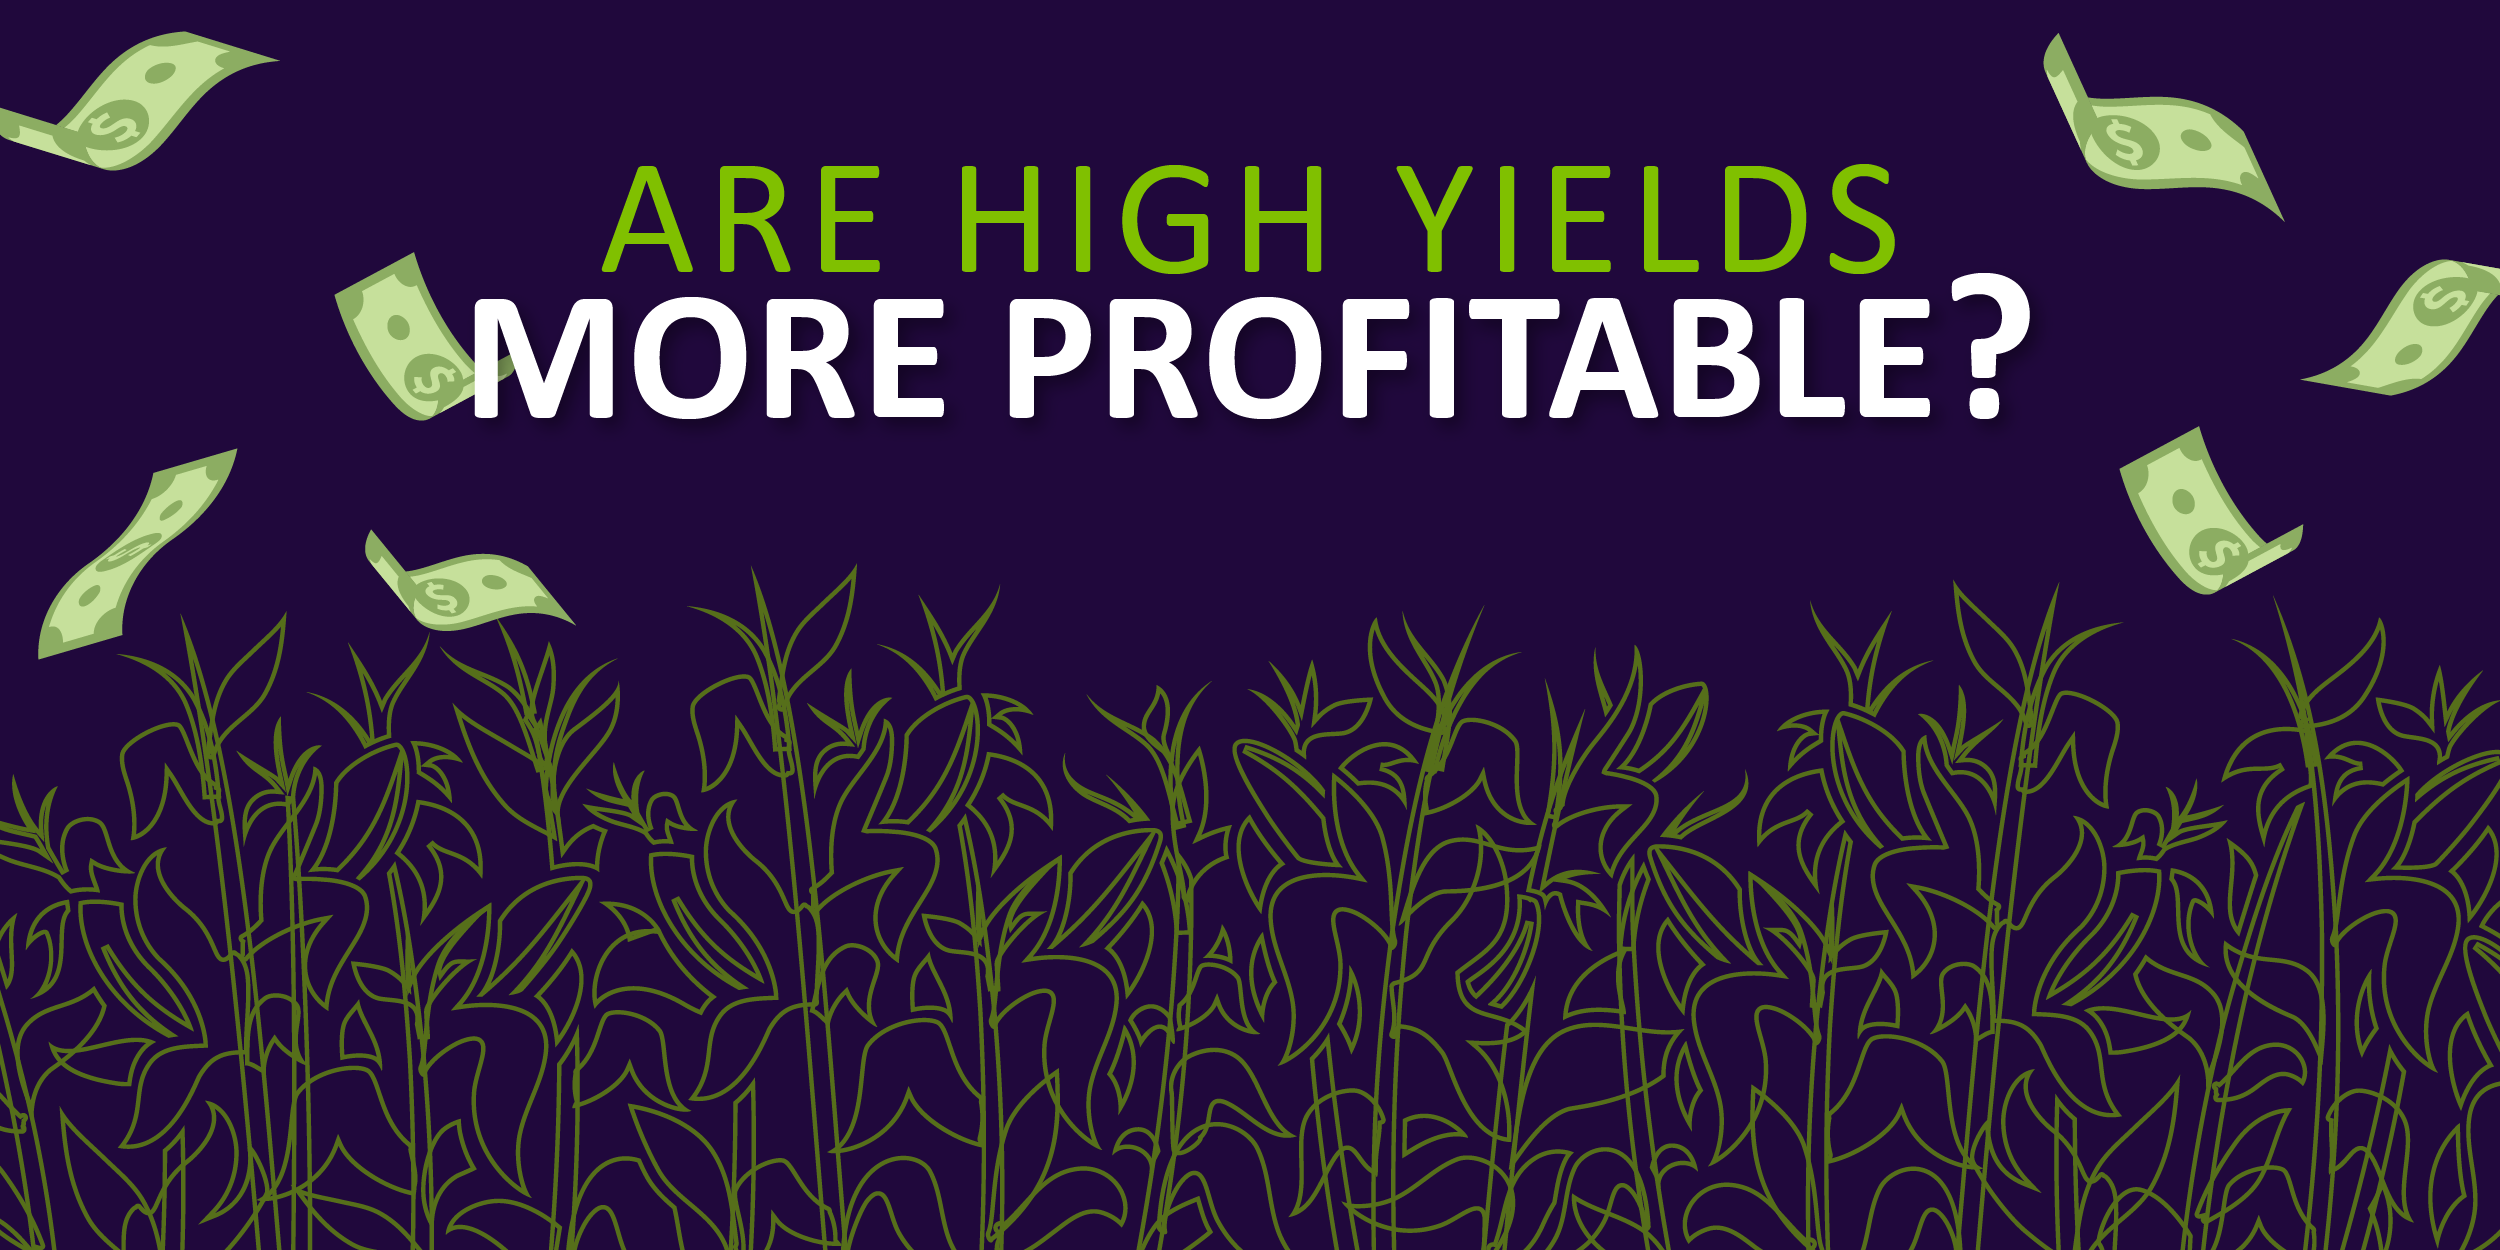 Are High Yields More Profitable?